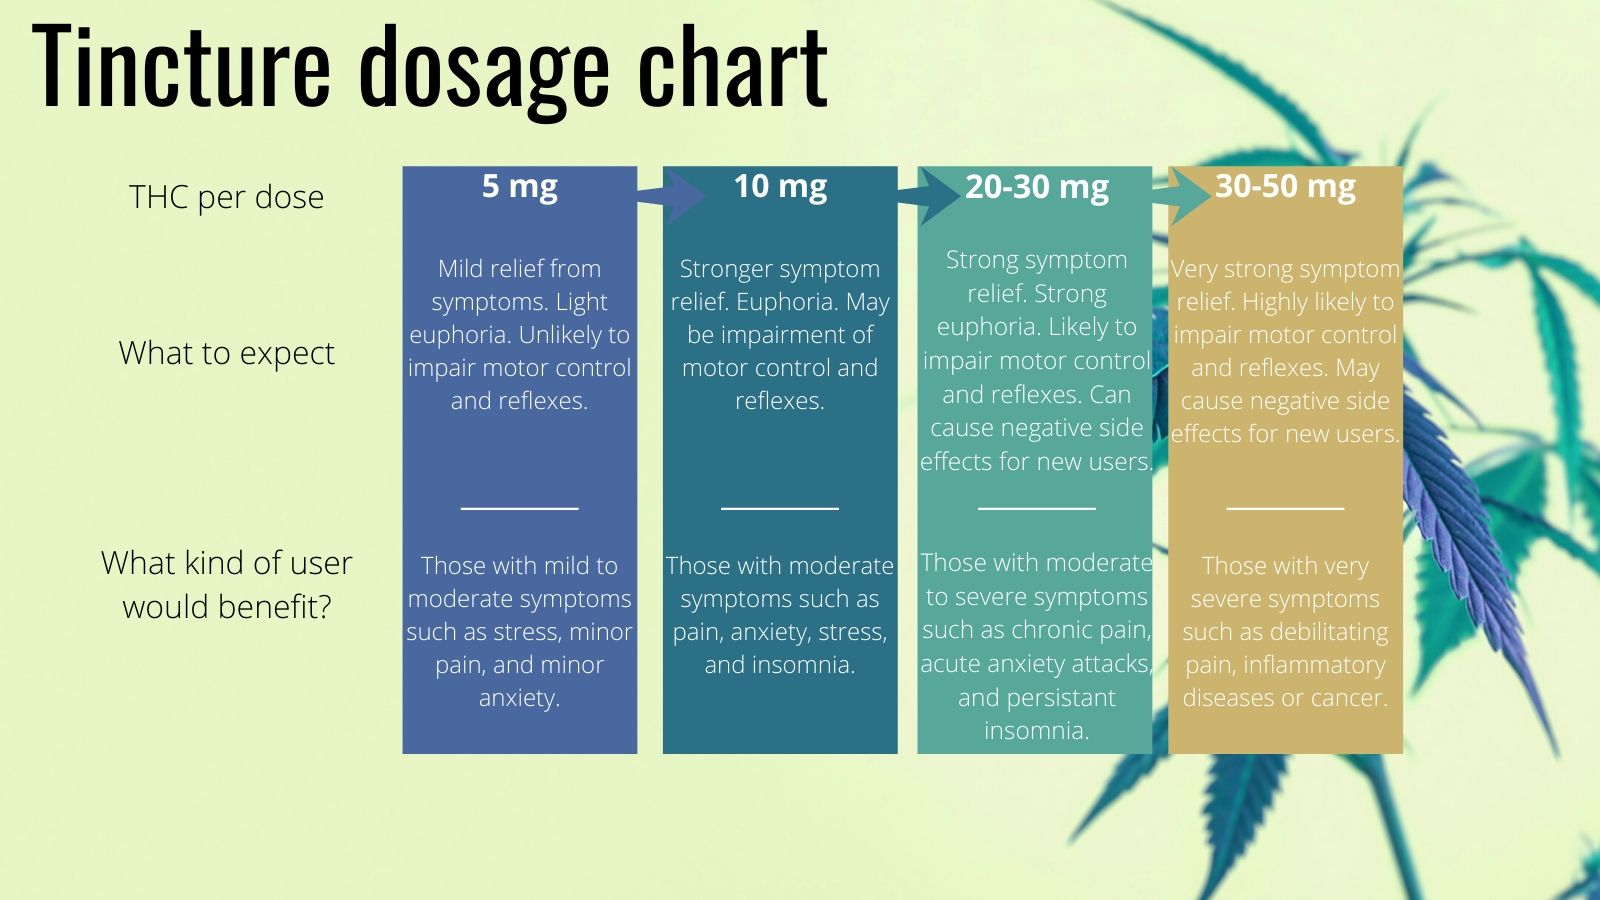 A guide on how to dose tinctures, by My Supply Co